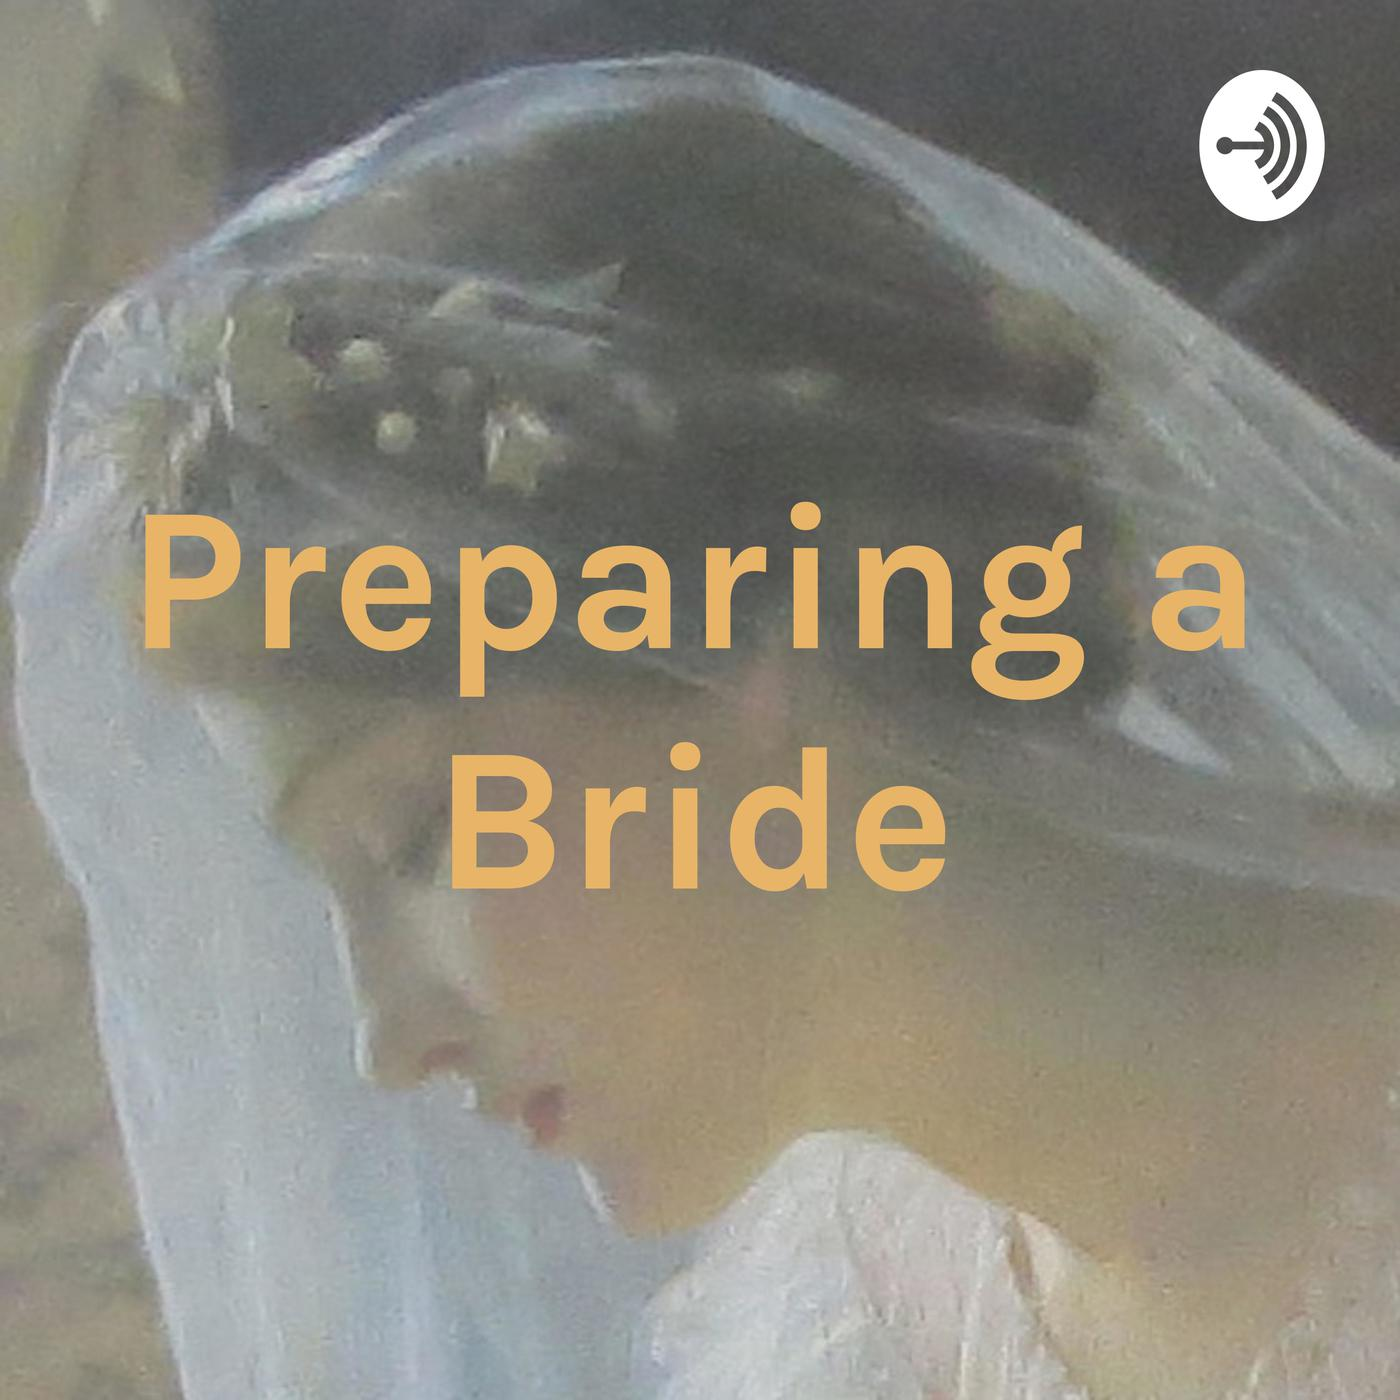 Preparing a Bride (podcast) - John Marcus Stead | Listen Notes